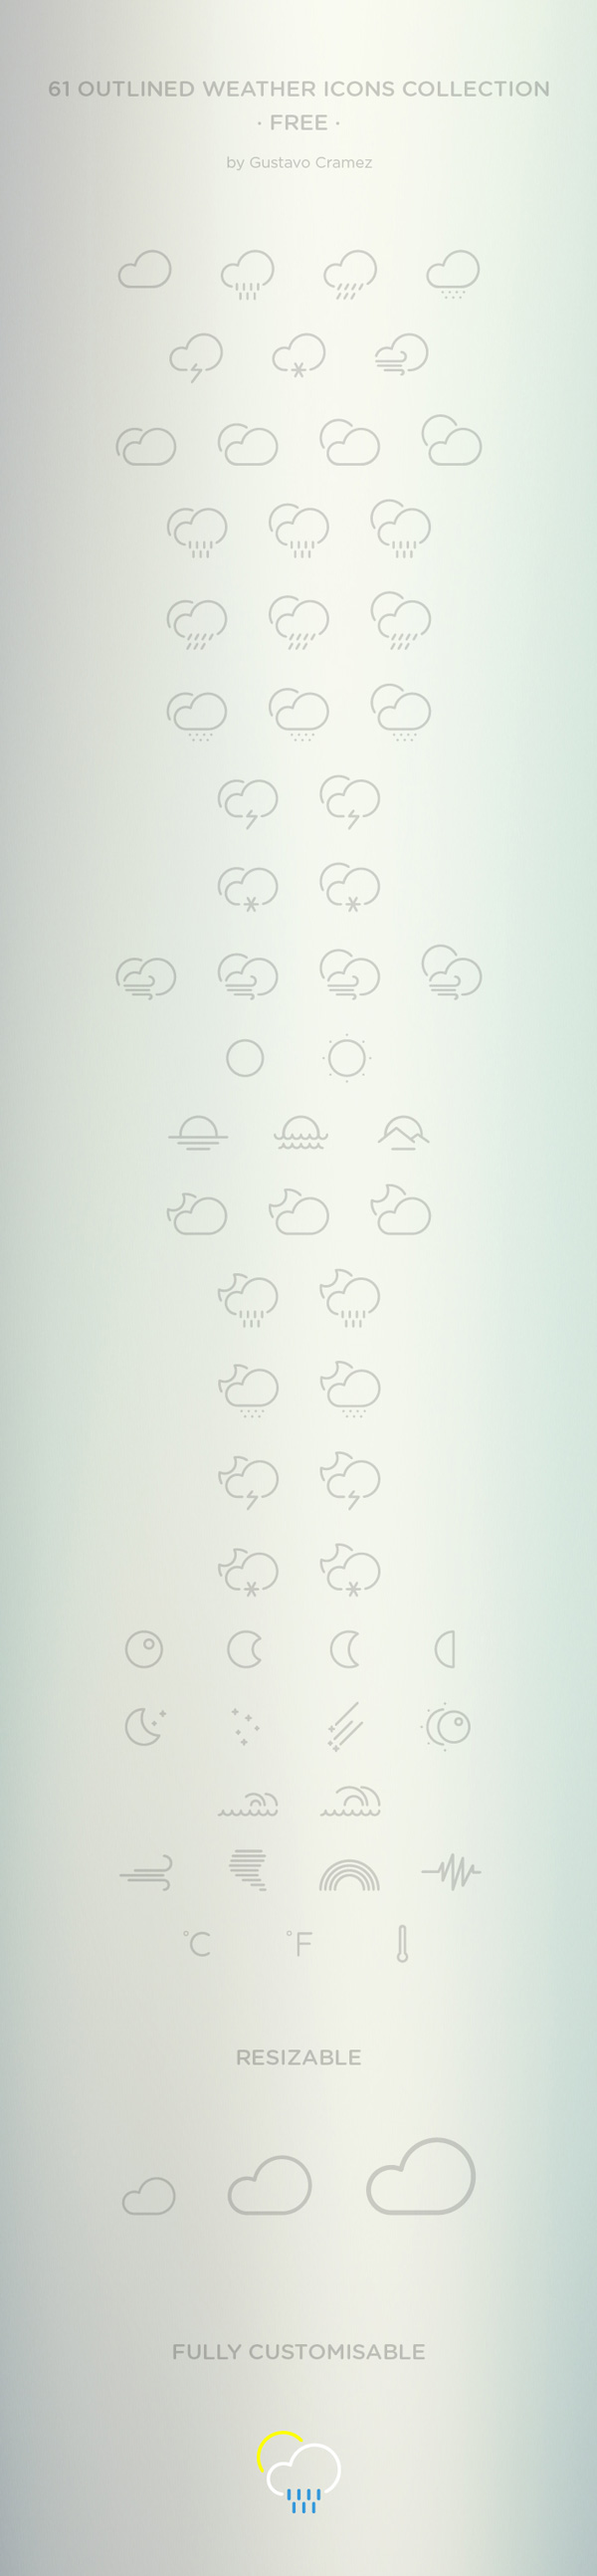 61 Outlined Weather Icons | GraphicBurger